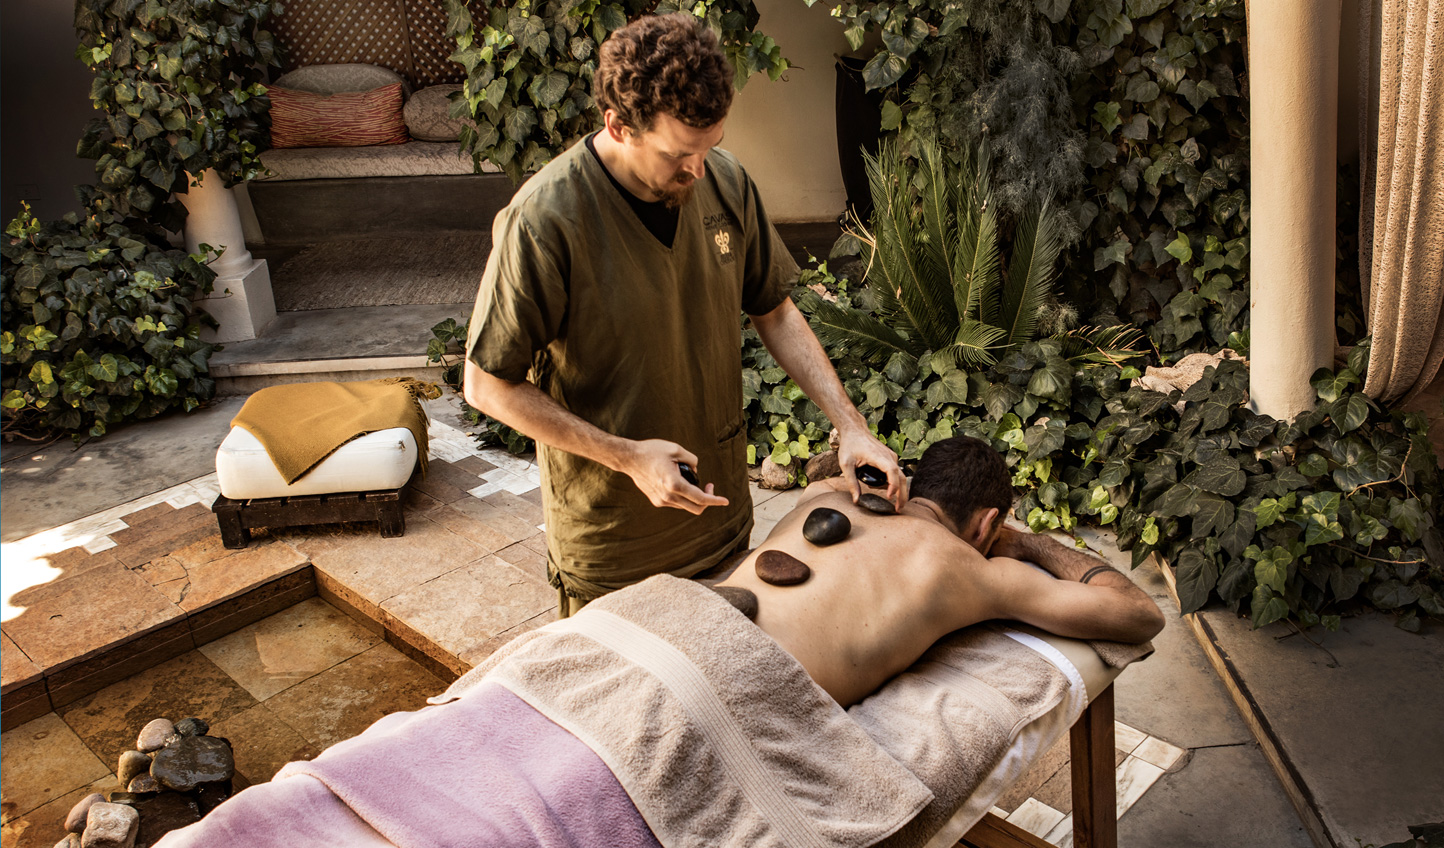 Retreat to the spa and enjoy a soothing massage